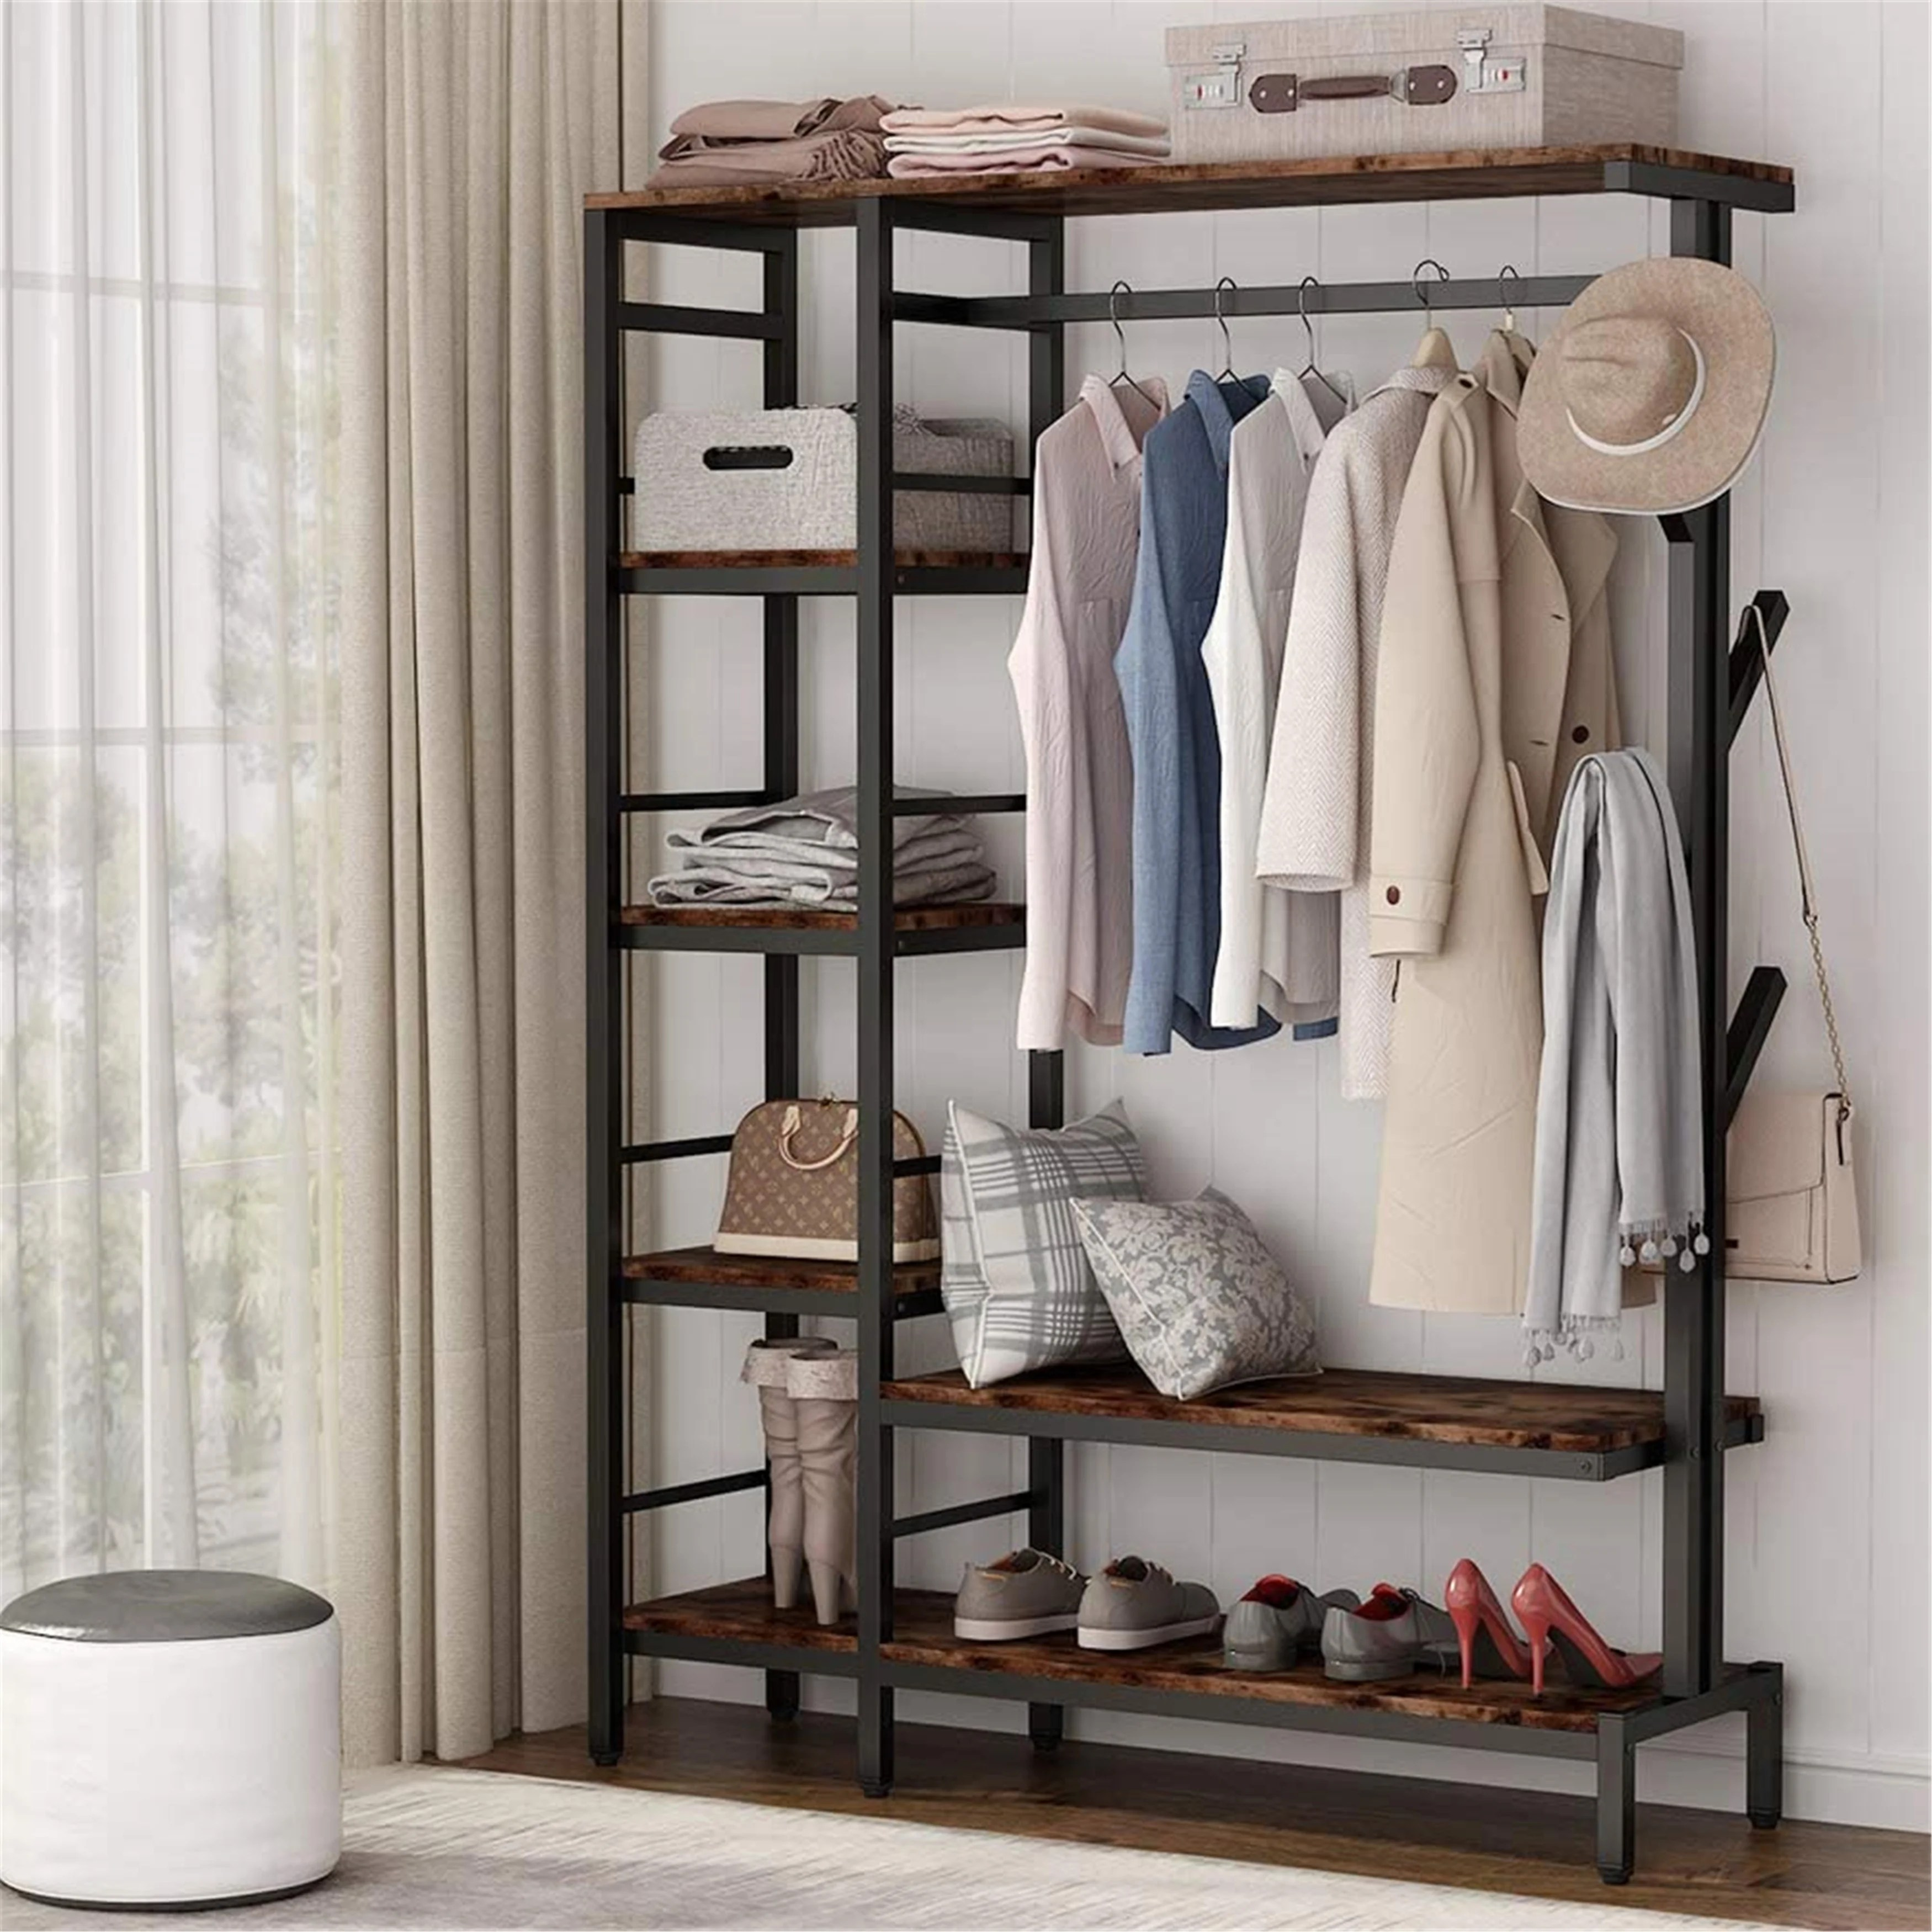 free standing closet organizer with hooks garment rack with shelves and hanging rod rustic brown